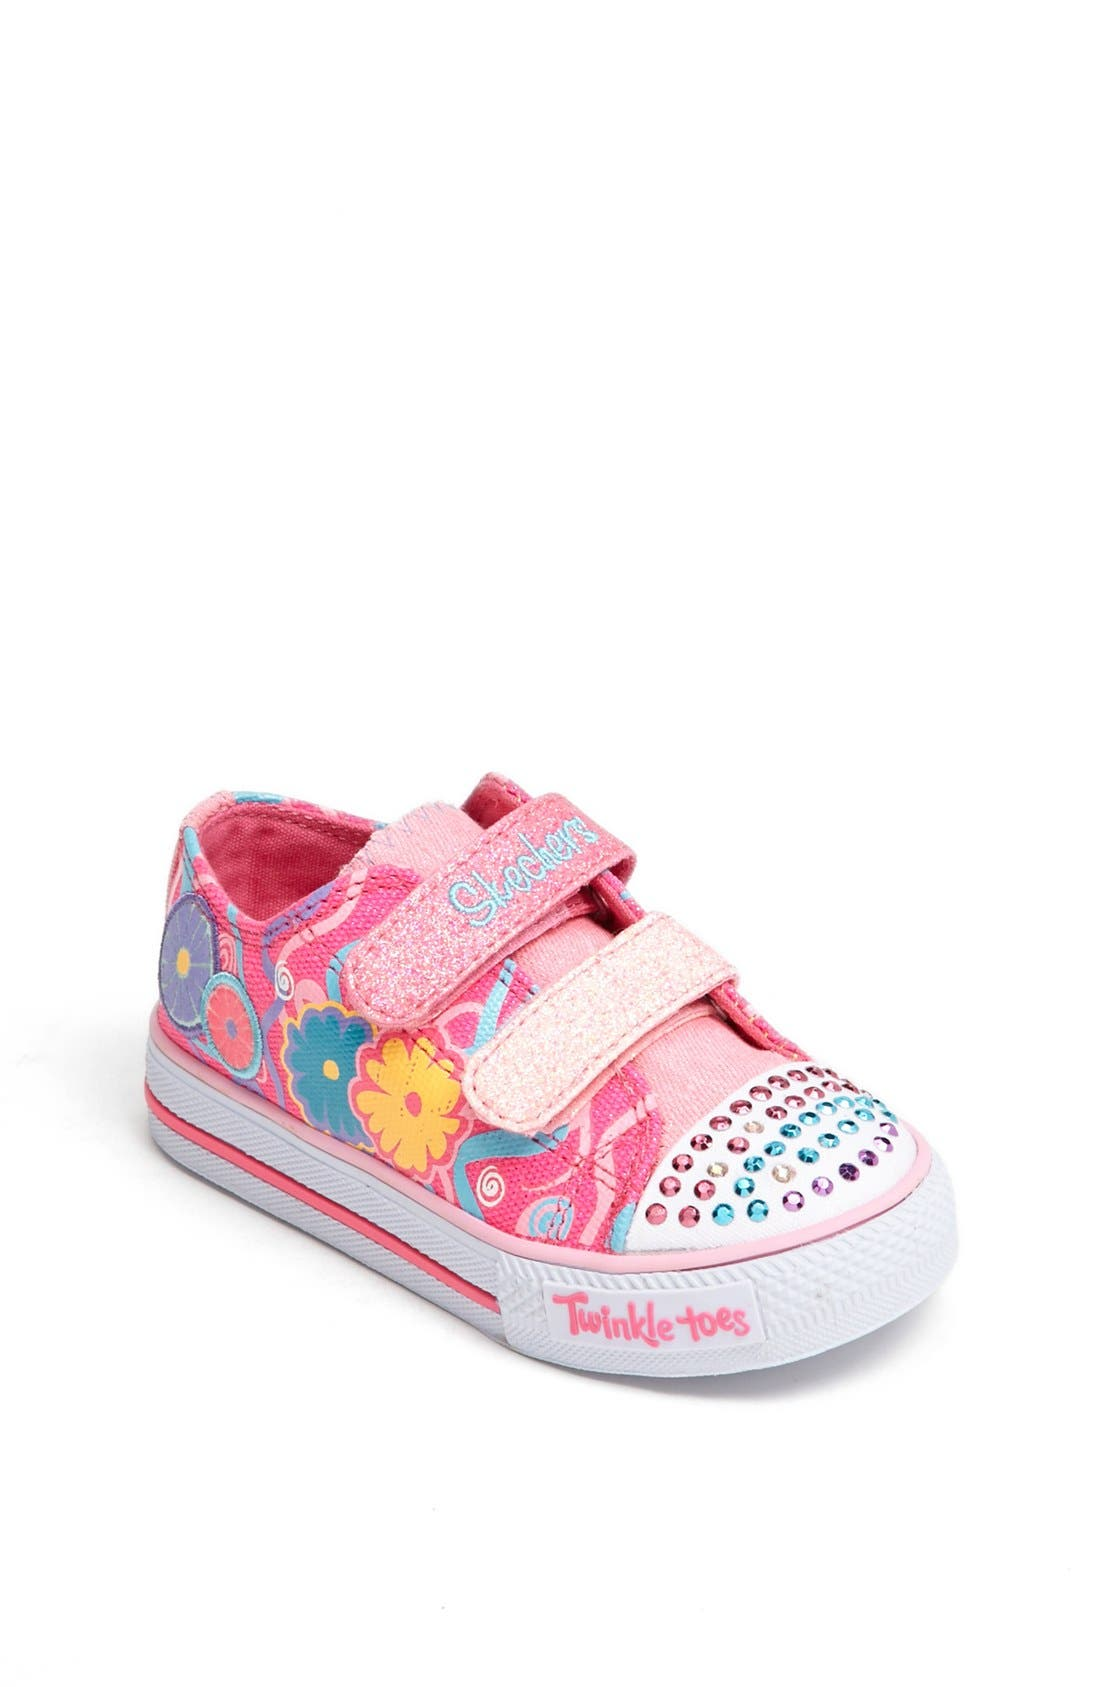 Alternate Image 1 Selected - SKECHERS 'Twinkle Toes - Sweet Talk' Light-Up Sneaker (Walker & Toddler)